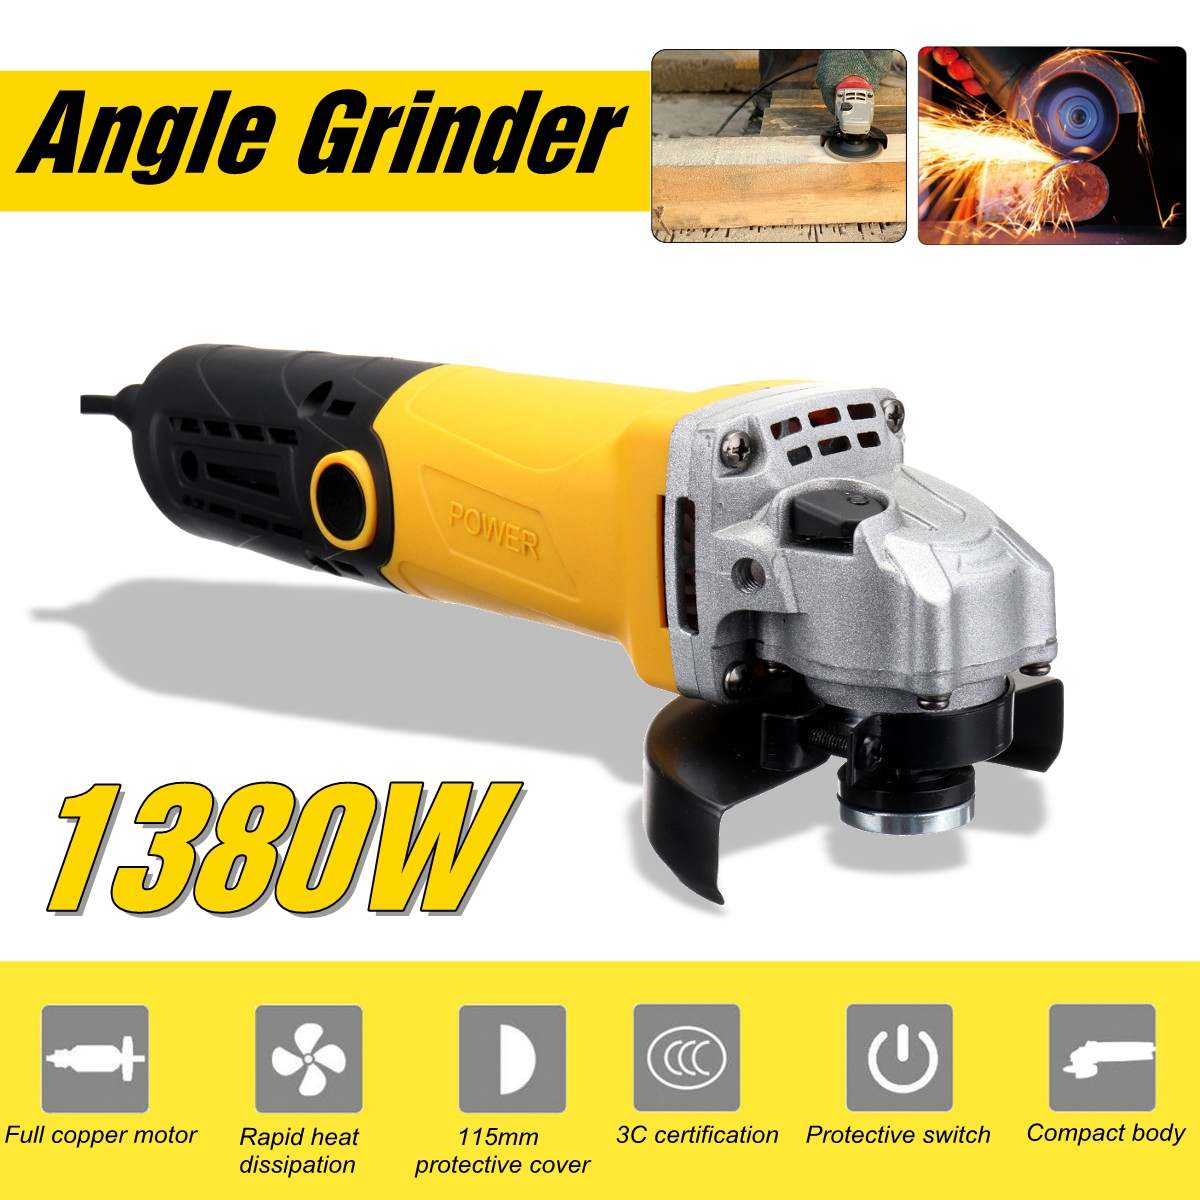 Metal Cutting Tool 220V/50Hz 1380W Electric Angle Grinder Grinding Machine 11000RPM Adjustable Anti-Slip Powerful Protect